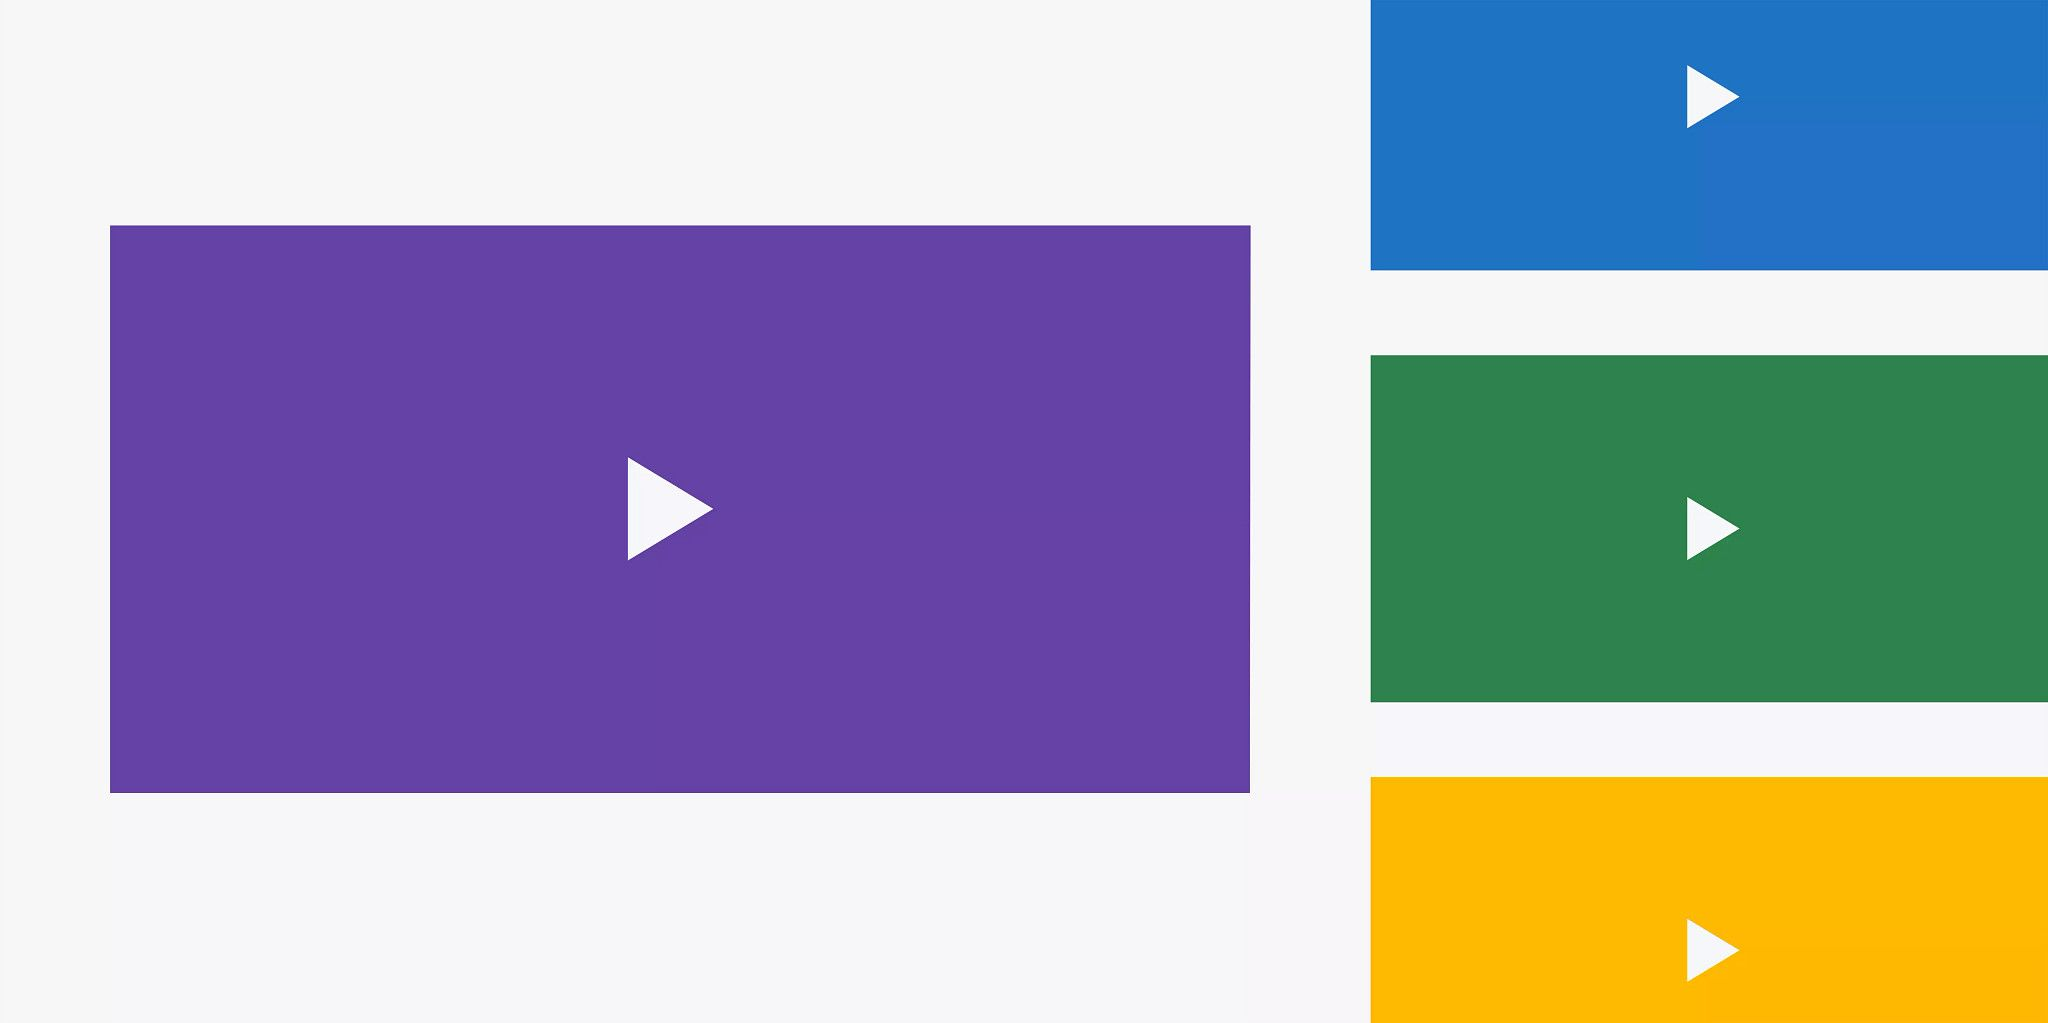 """Large purple rectangle centered on two thirds of the image and three smaller rectangles stacked on the right side of the image. All are solid colors and have a white """"play"""" button in the middle."""